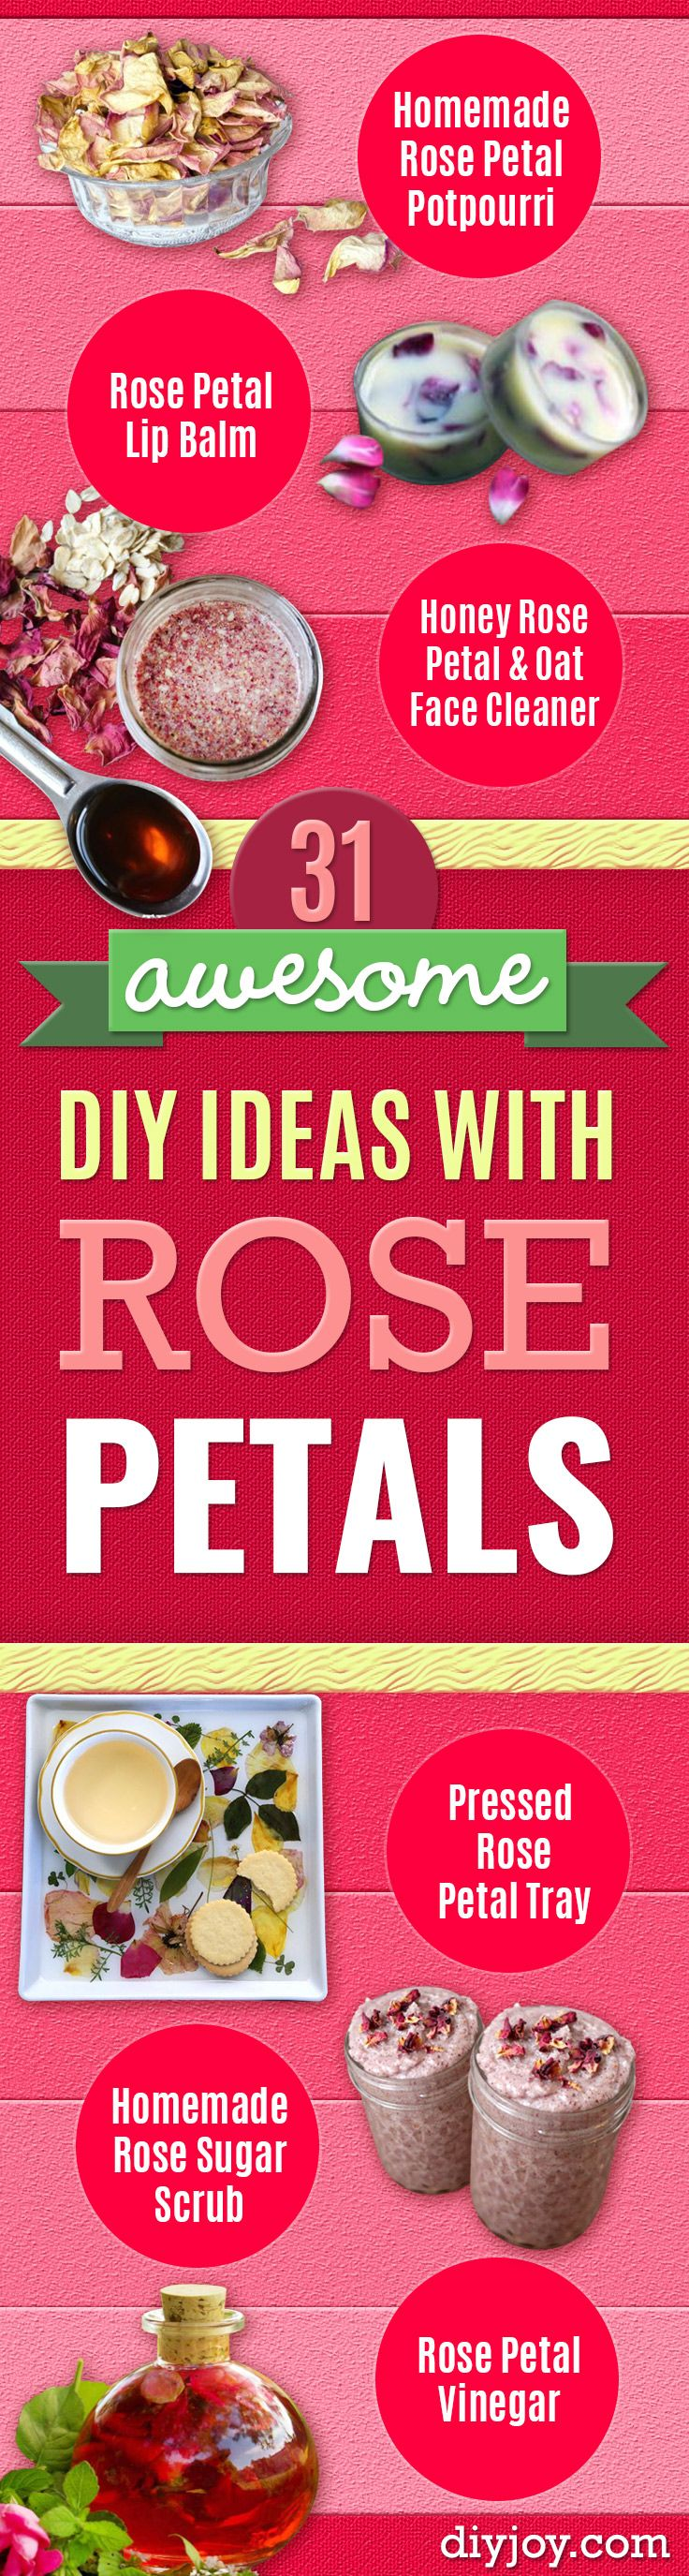 DIY Ideas With Rose Petals - Crafts and DIY Projects, Recipes You Can Make With Rose Petals - Creative Home Decor and Gift Ideas Make Awesome Mothers Day and Christmas Gifts - Crafts and Do It Yourself by DIY JOY http://diyjoy.com/diy-ideas-rose-petals